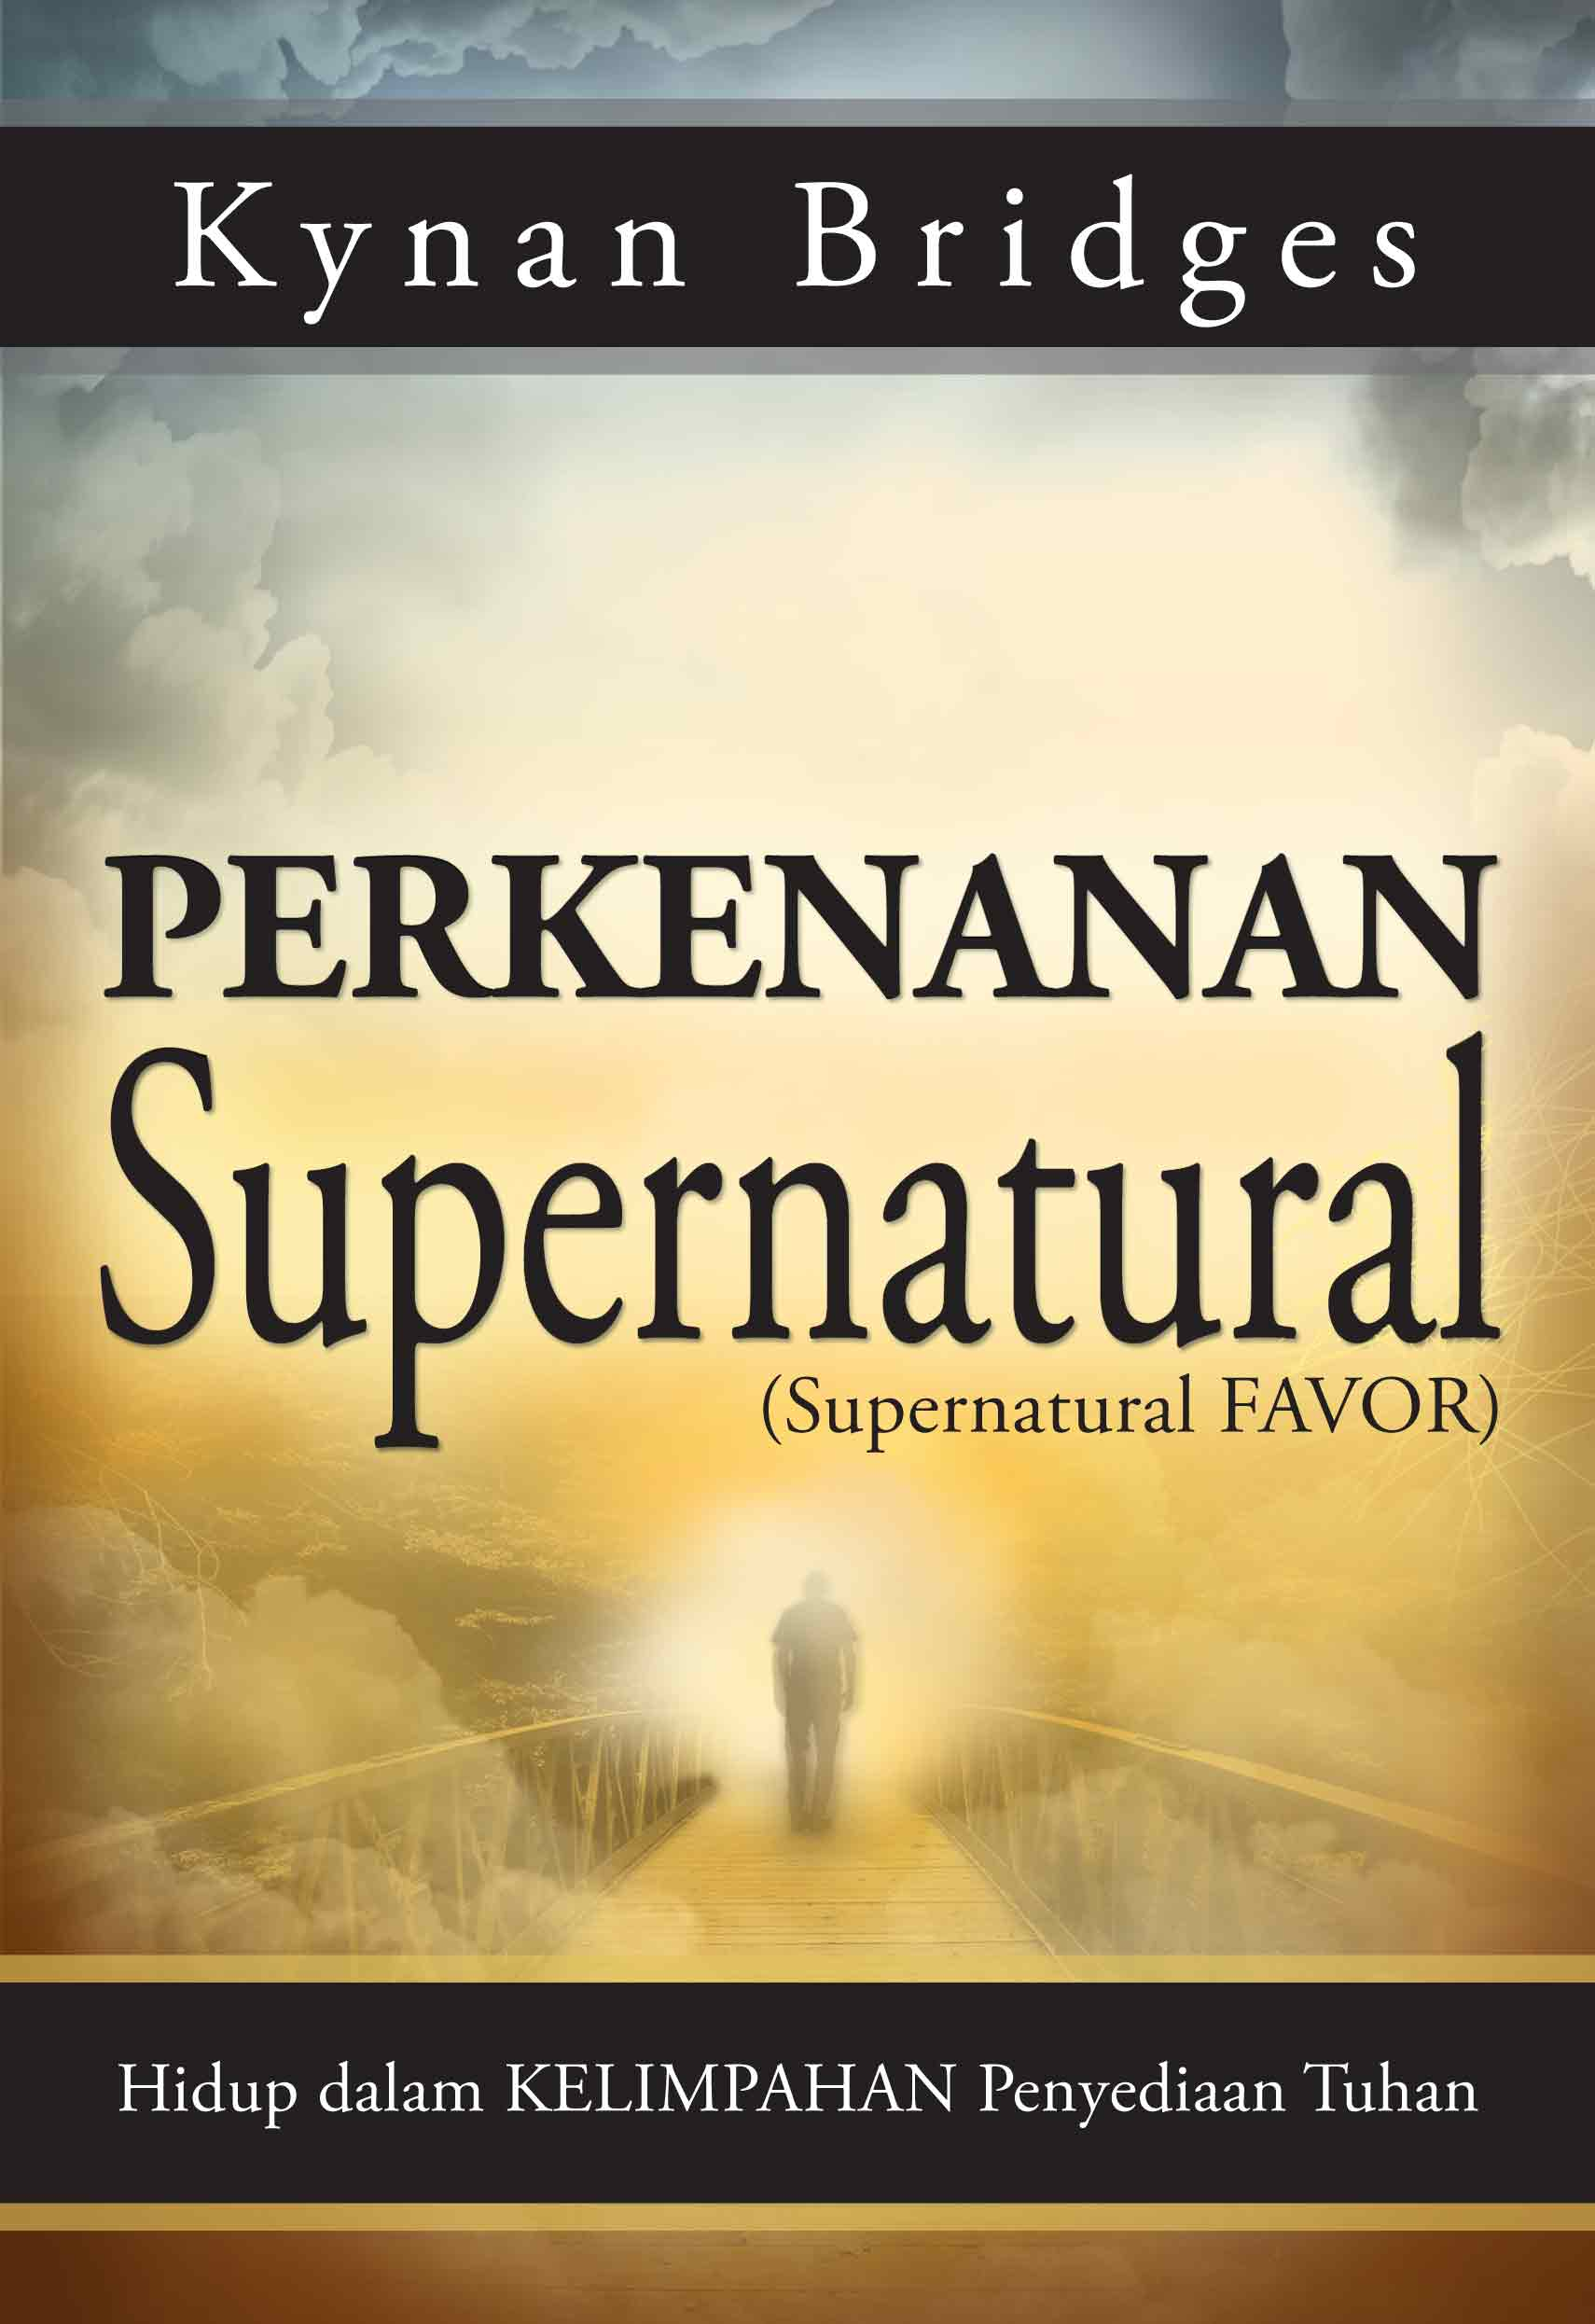 Perkenanan Supernatural